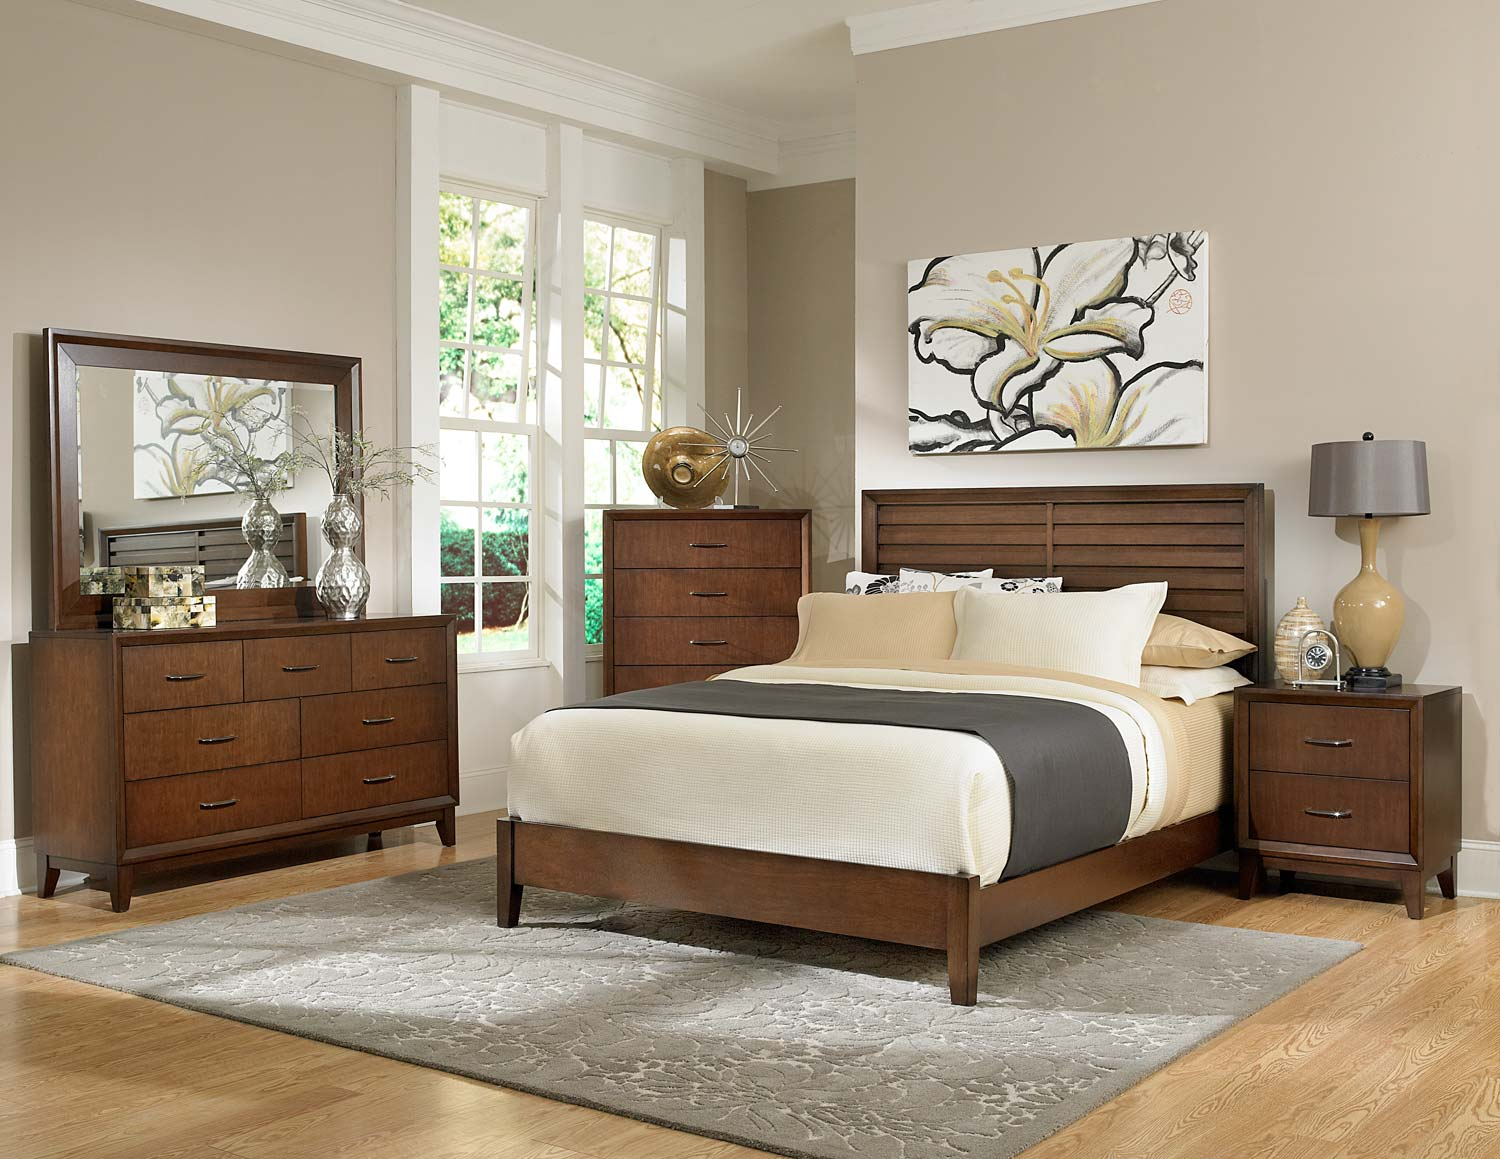 Homelegance Oliver Bedroom Set - Warm Brown Cherry B2189-BED-SET ...